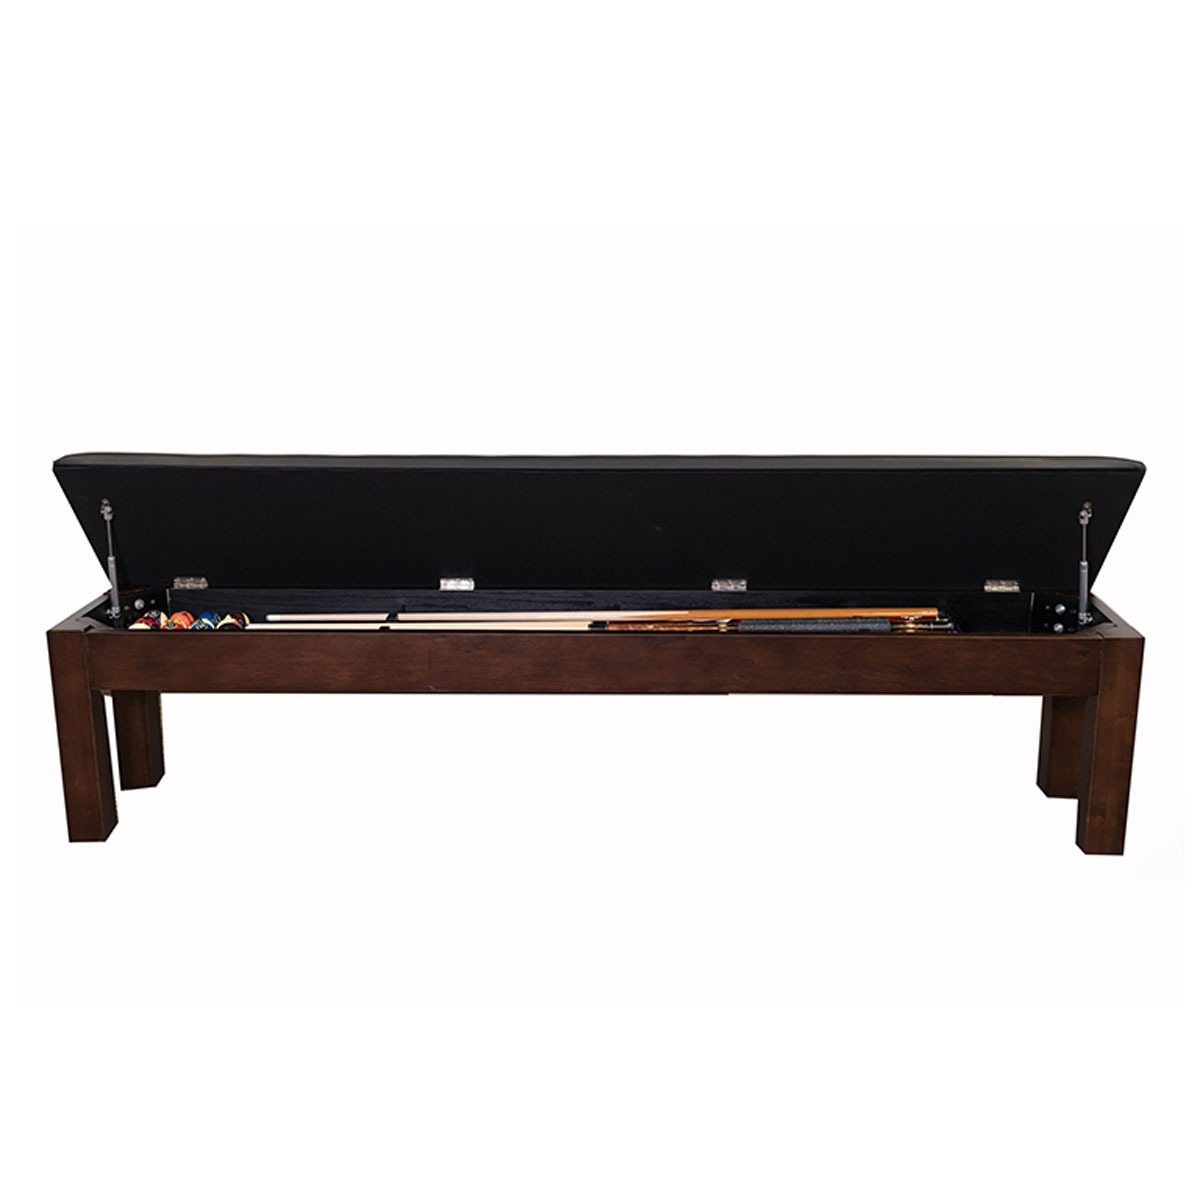 Hamilton Bench Openq - Dutchess Pool Table